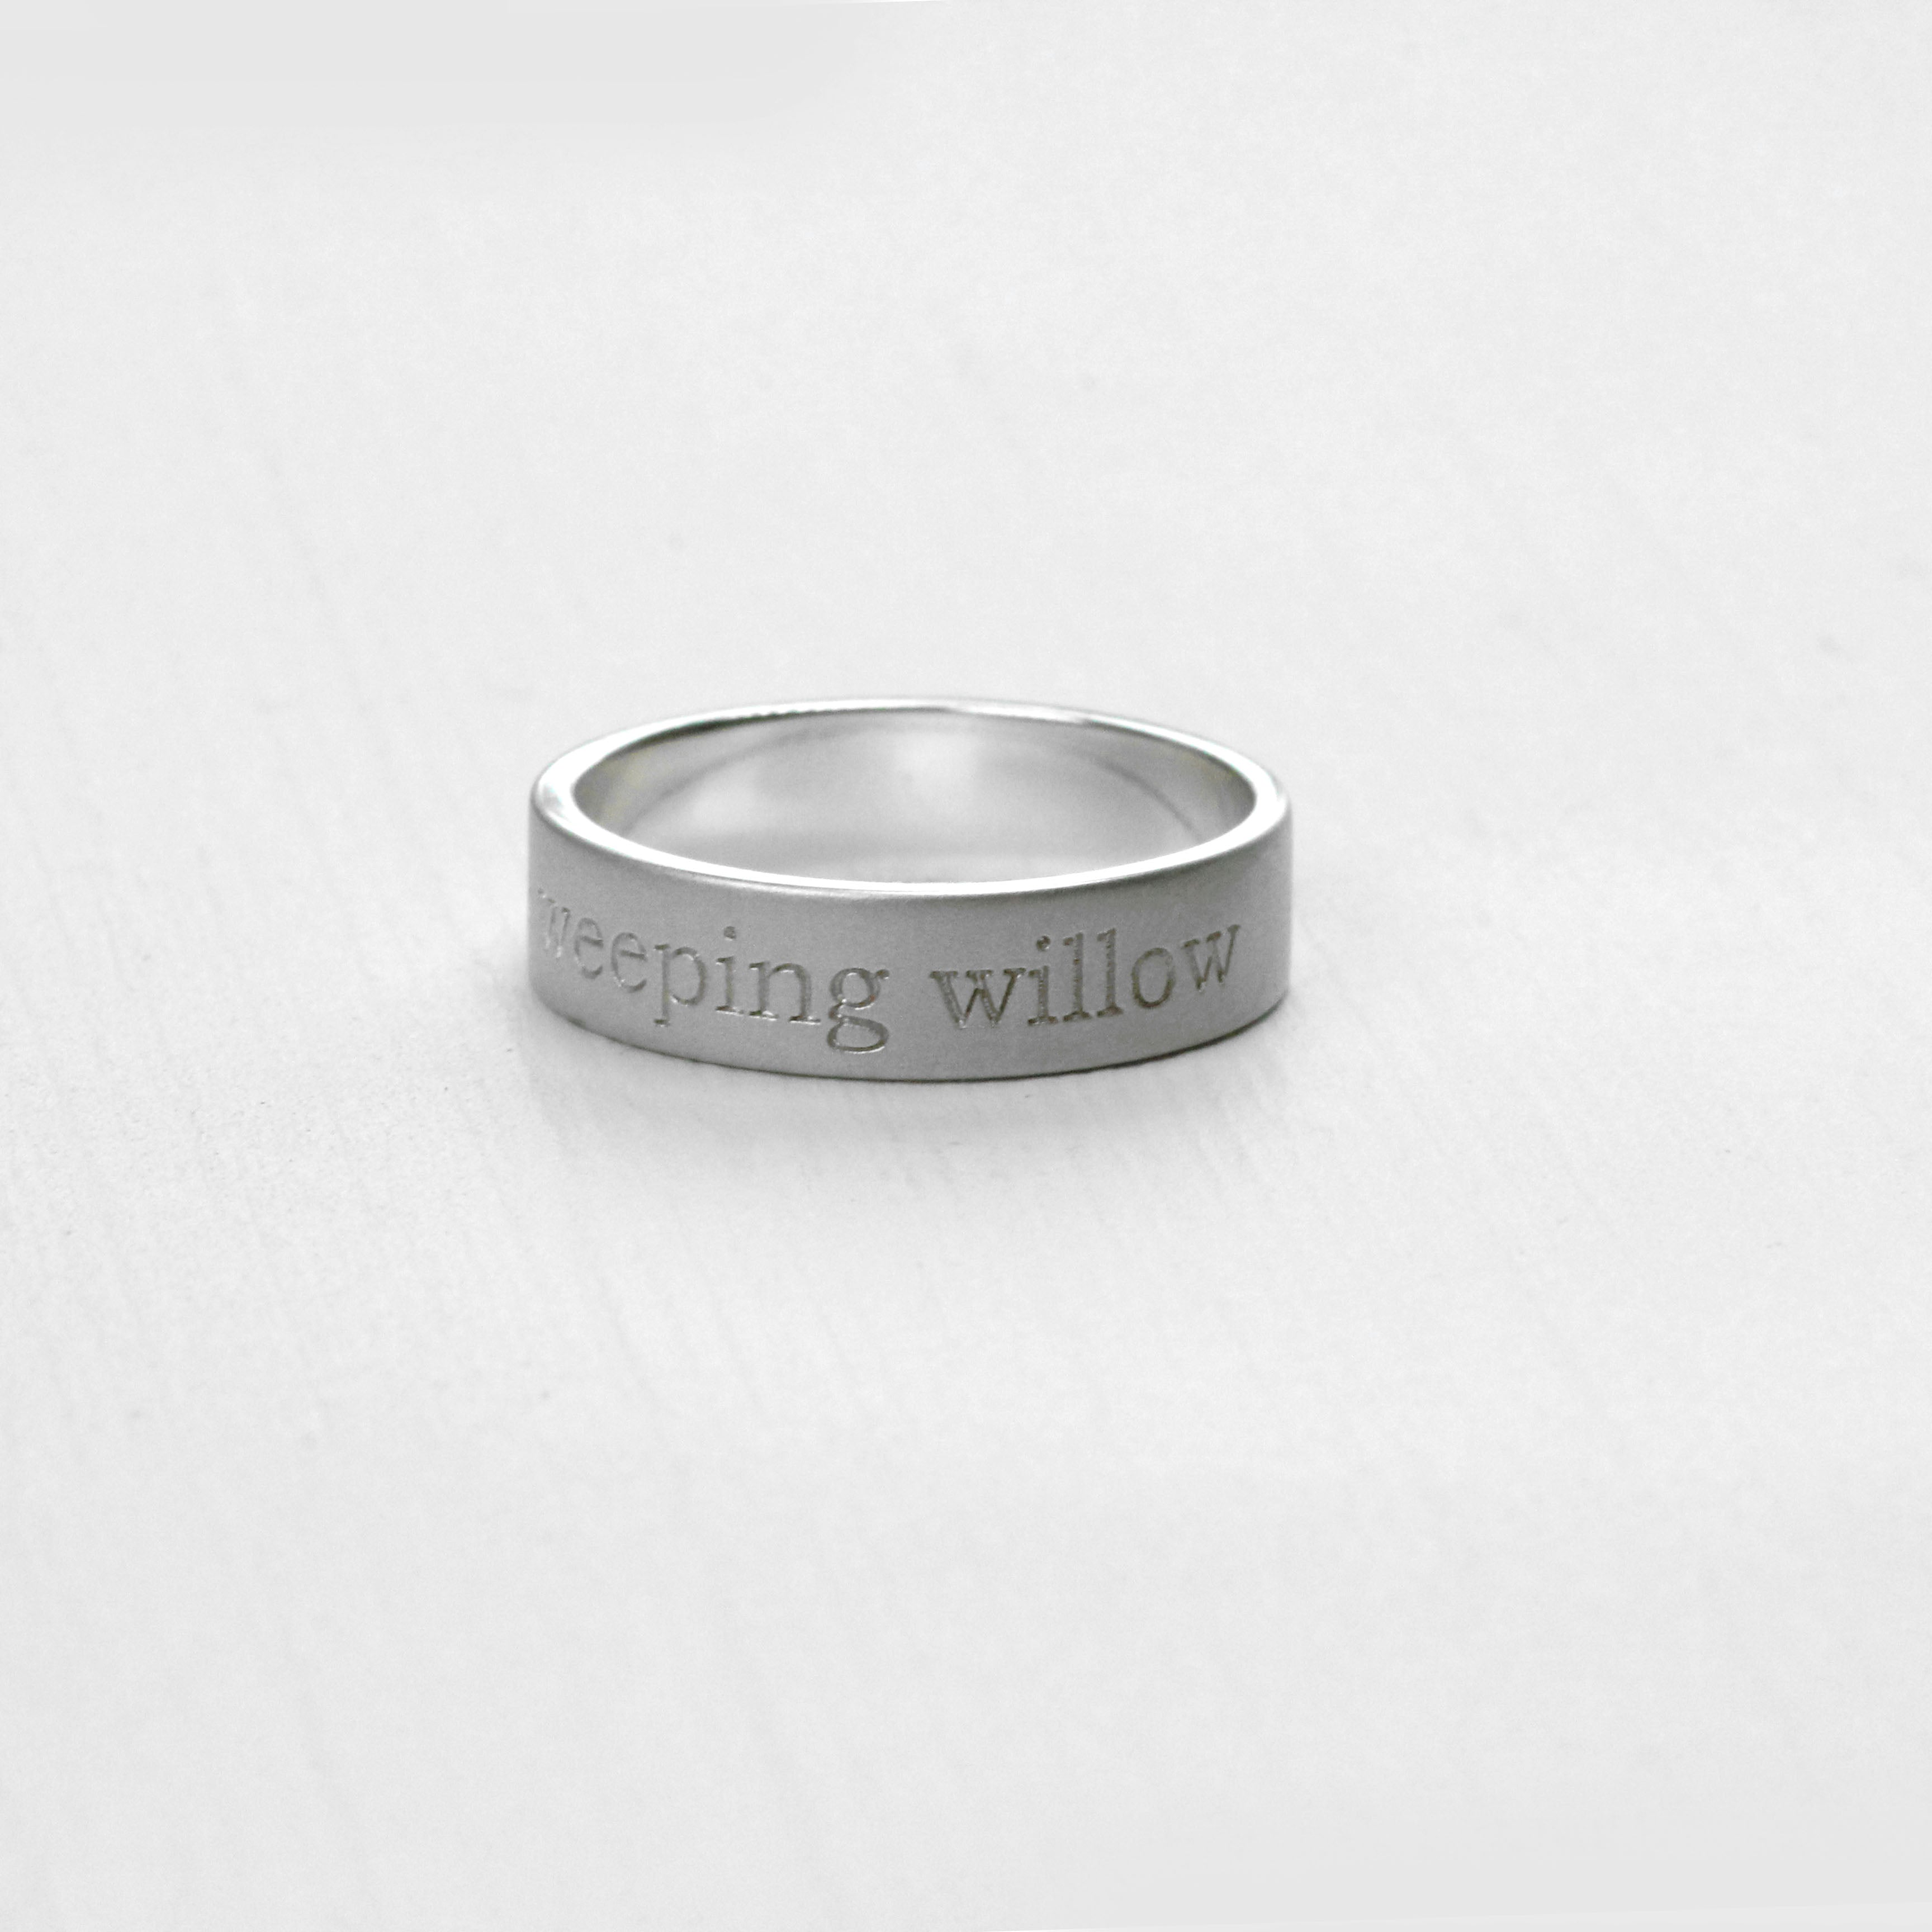 Engraved Wedding Band Ring 14k Gold Wedding Band - Salt & Pepper Celestial Diamond Engagement Rings and Wedding Bands  by Midwinter Co.